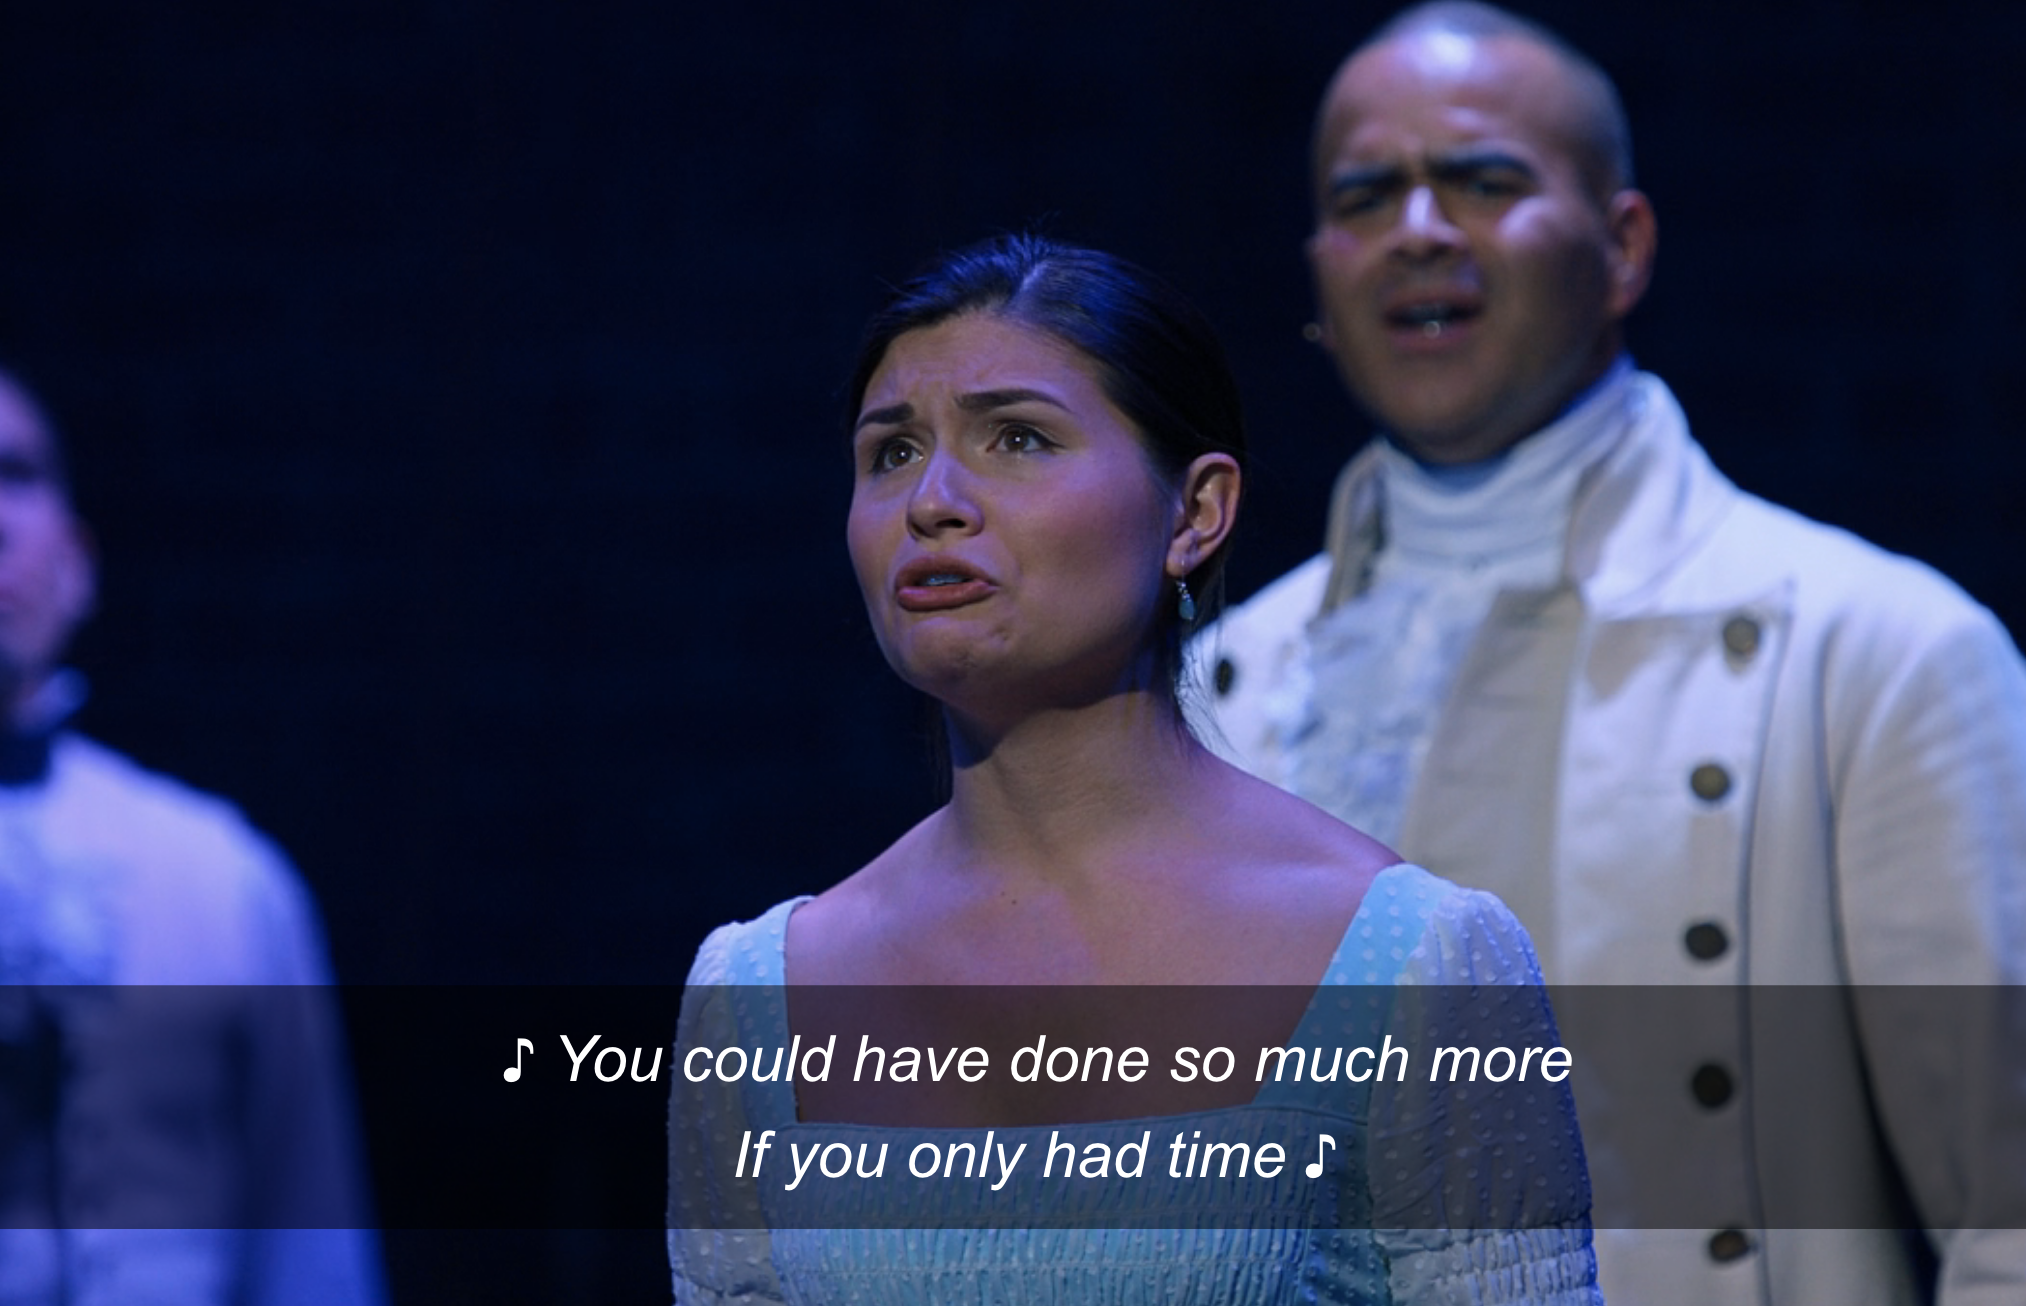 """Philippa Soo as Elizabeth singing """"You could have done so much more if you only had time"""""""